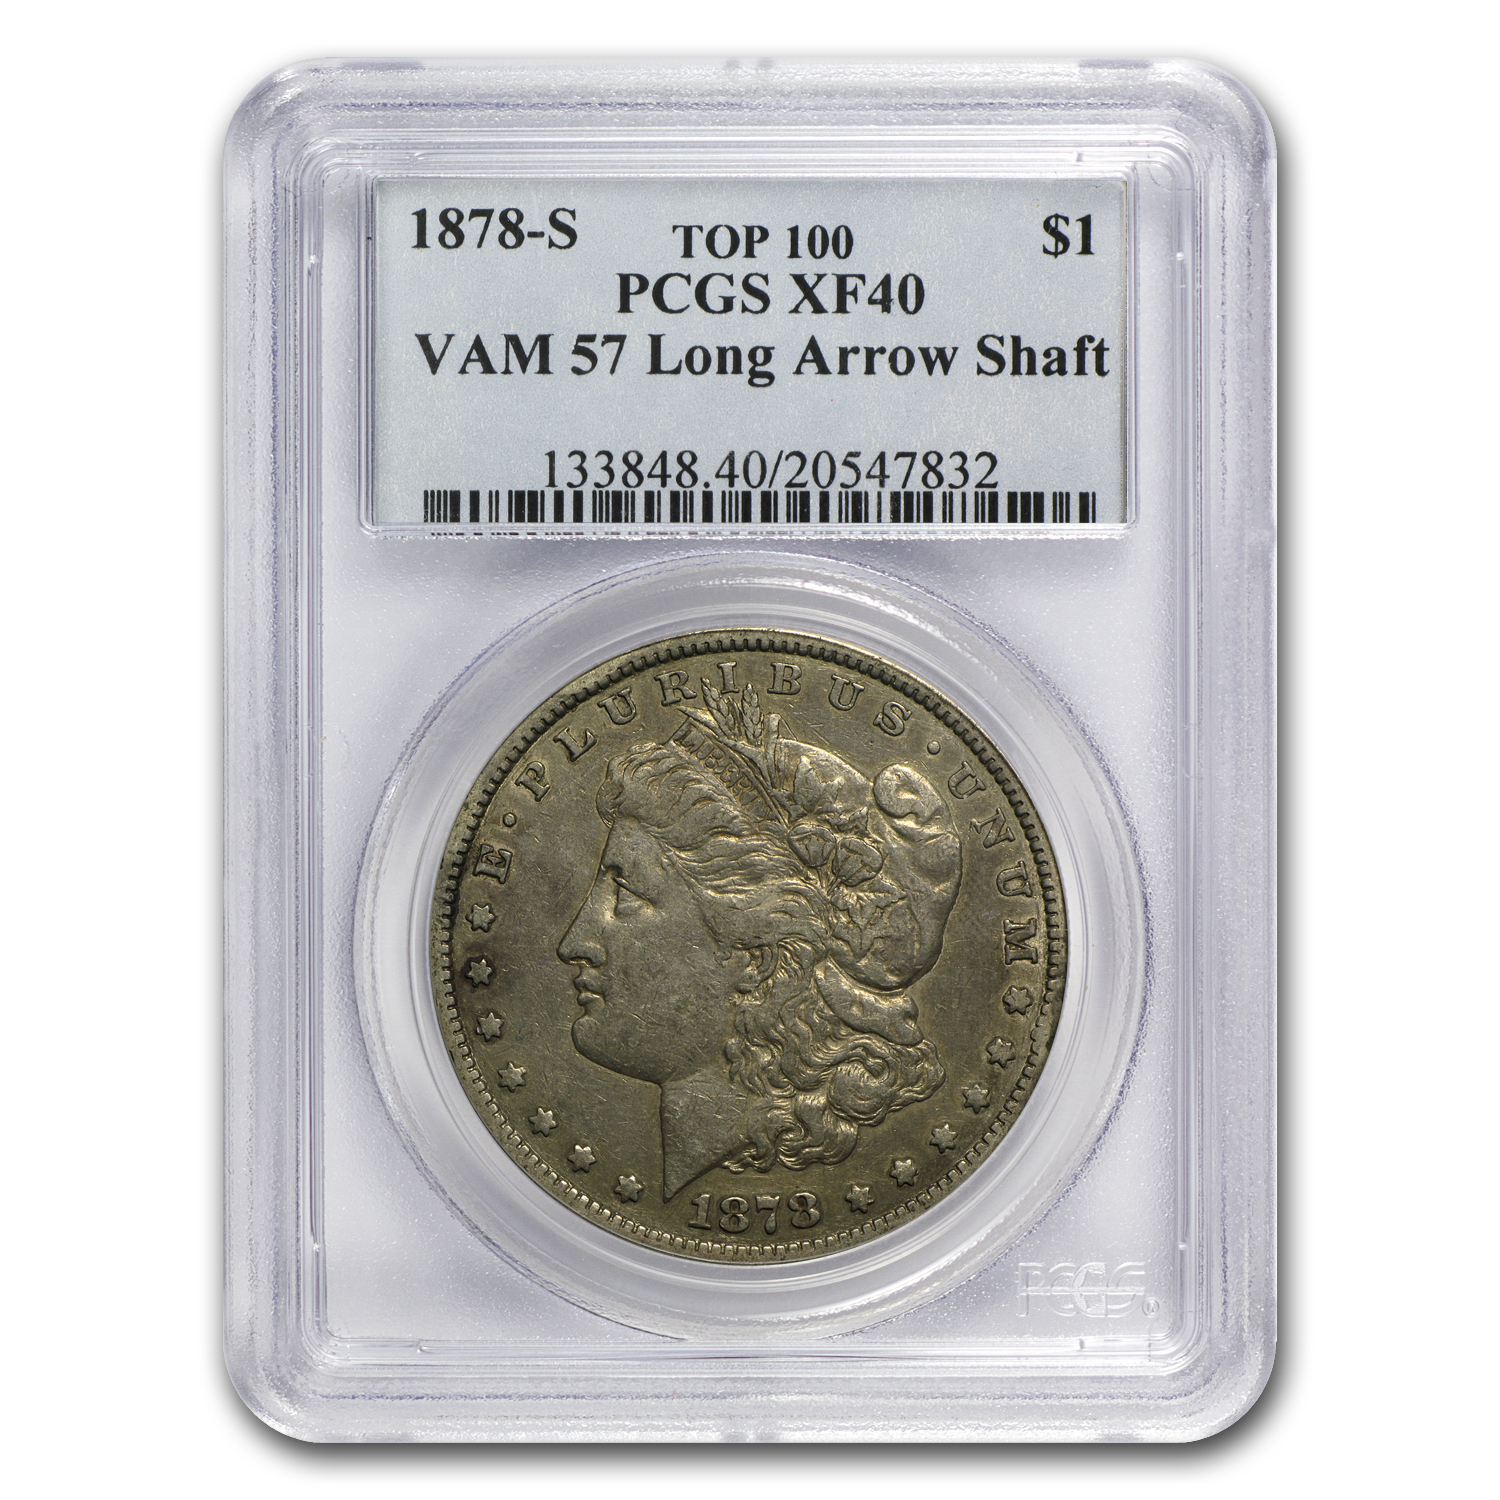 1878-S Morgan Dollar XF-40 PCGS (VAM-57, Long Nock Rev, Top 100)